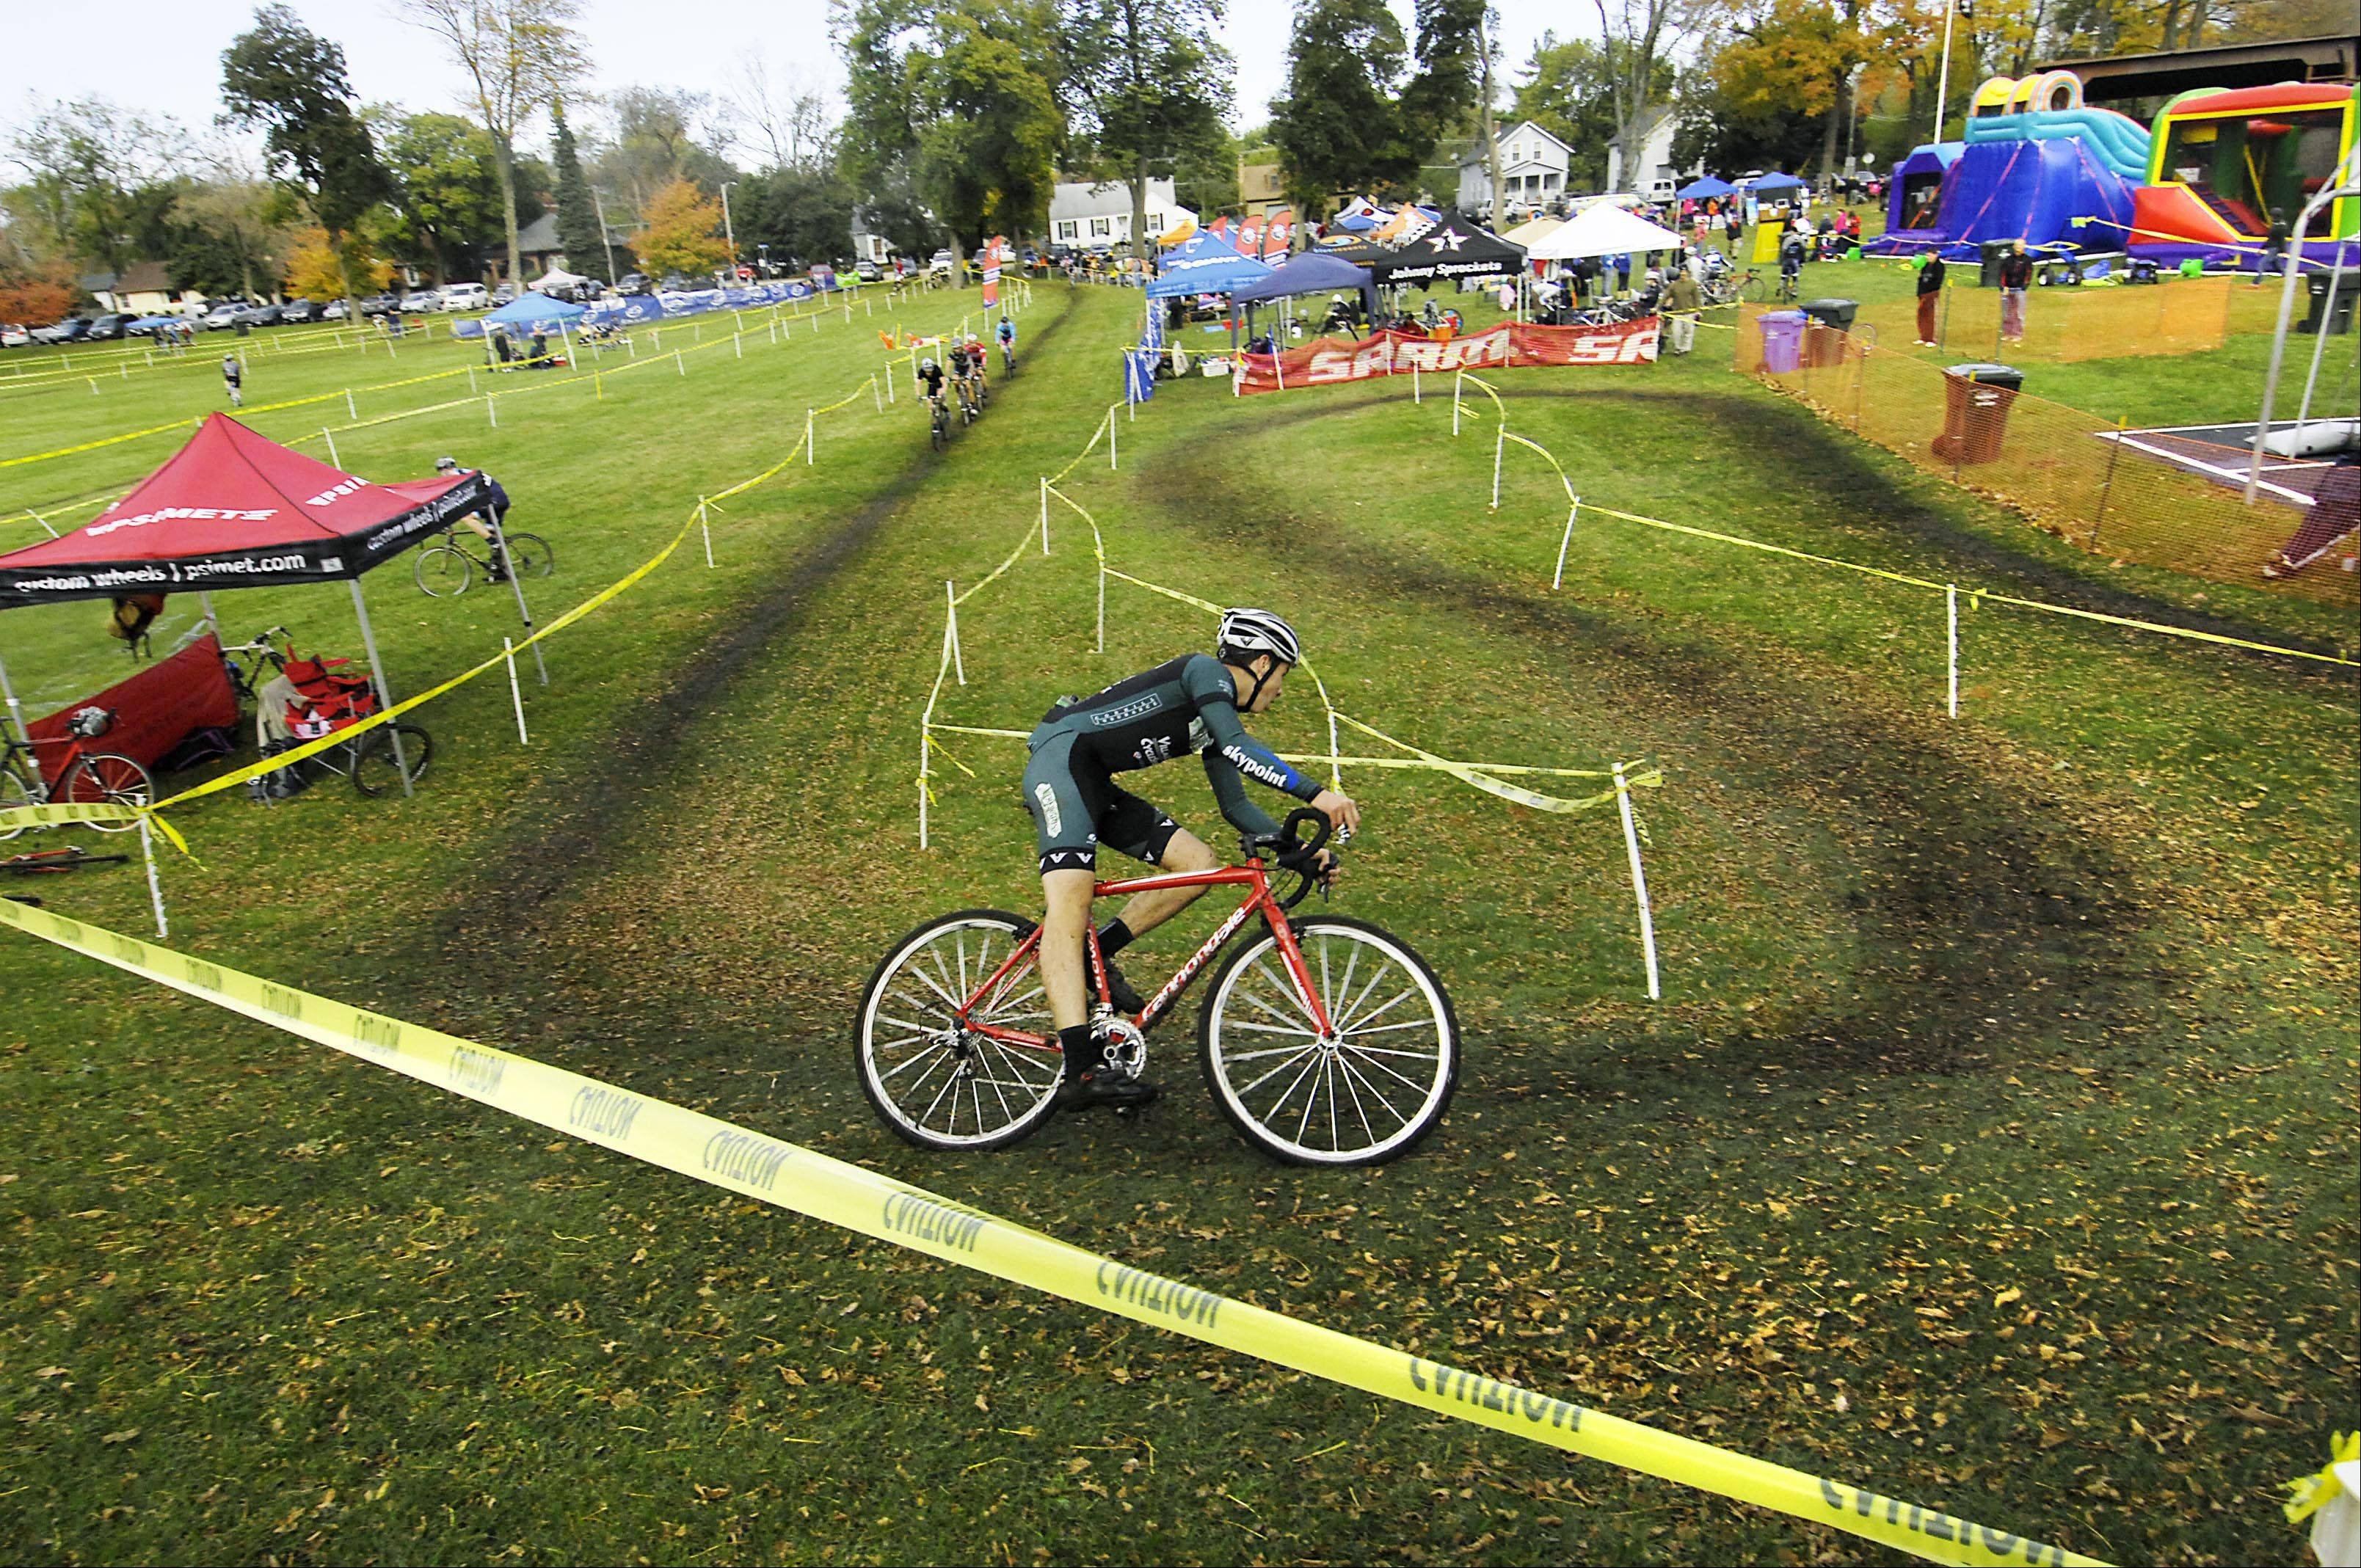 David Lombardo, 16, competes in last year's Chicago Cyclocross Cup race in Carpentersville. The 16-year-old from Crystal Lake is the reigning state champion in his age group and earlier this year placed seventh in the national finals.